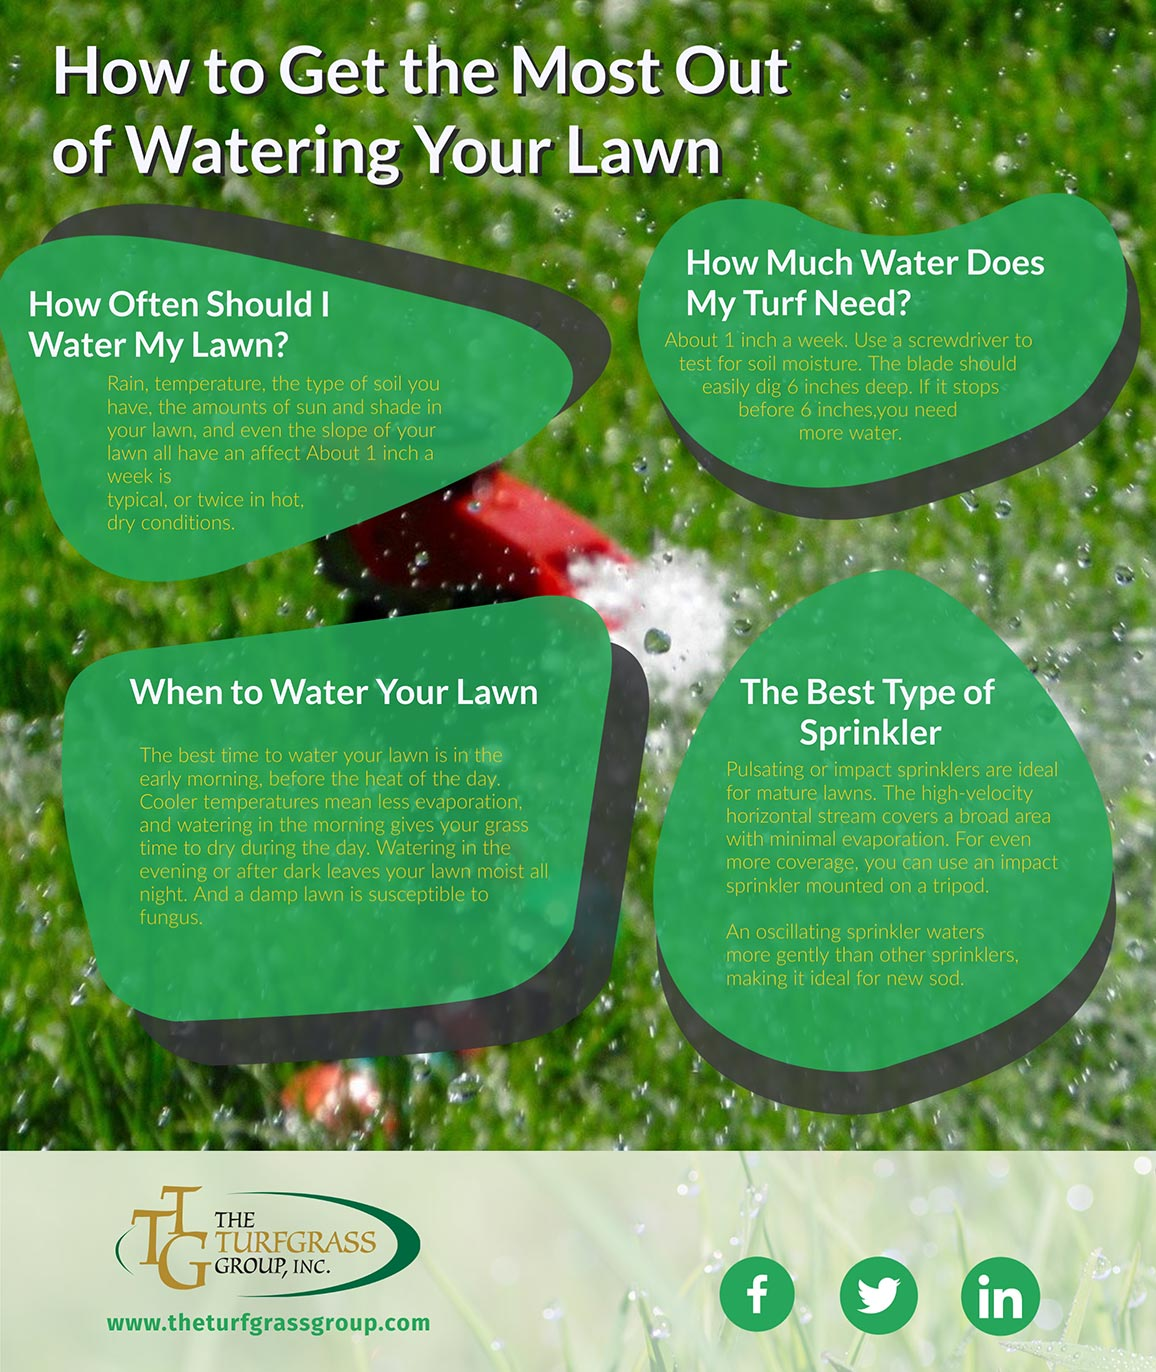 How to Get the Most Out of Watering Your Lawn [infographic]